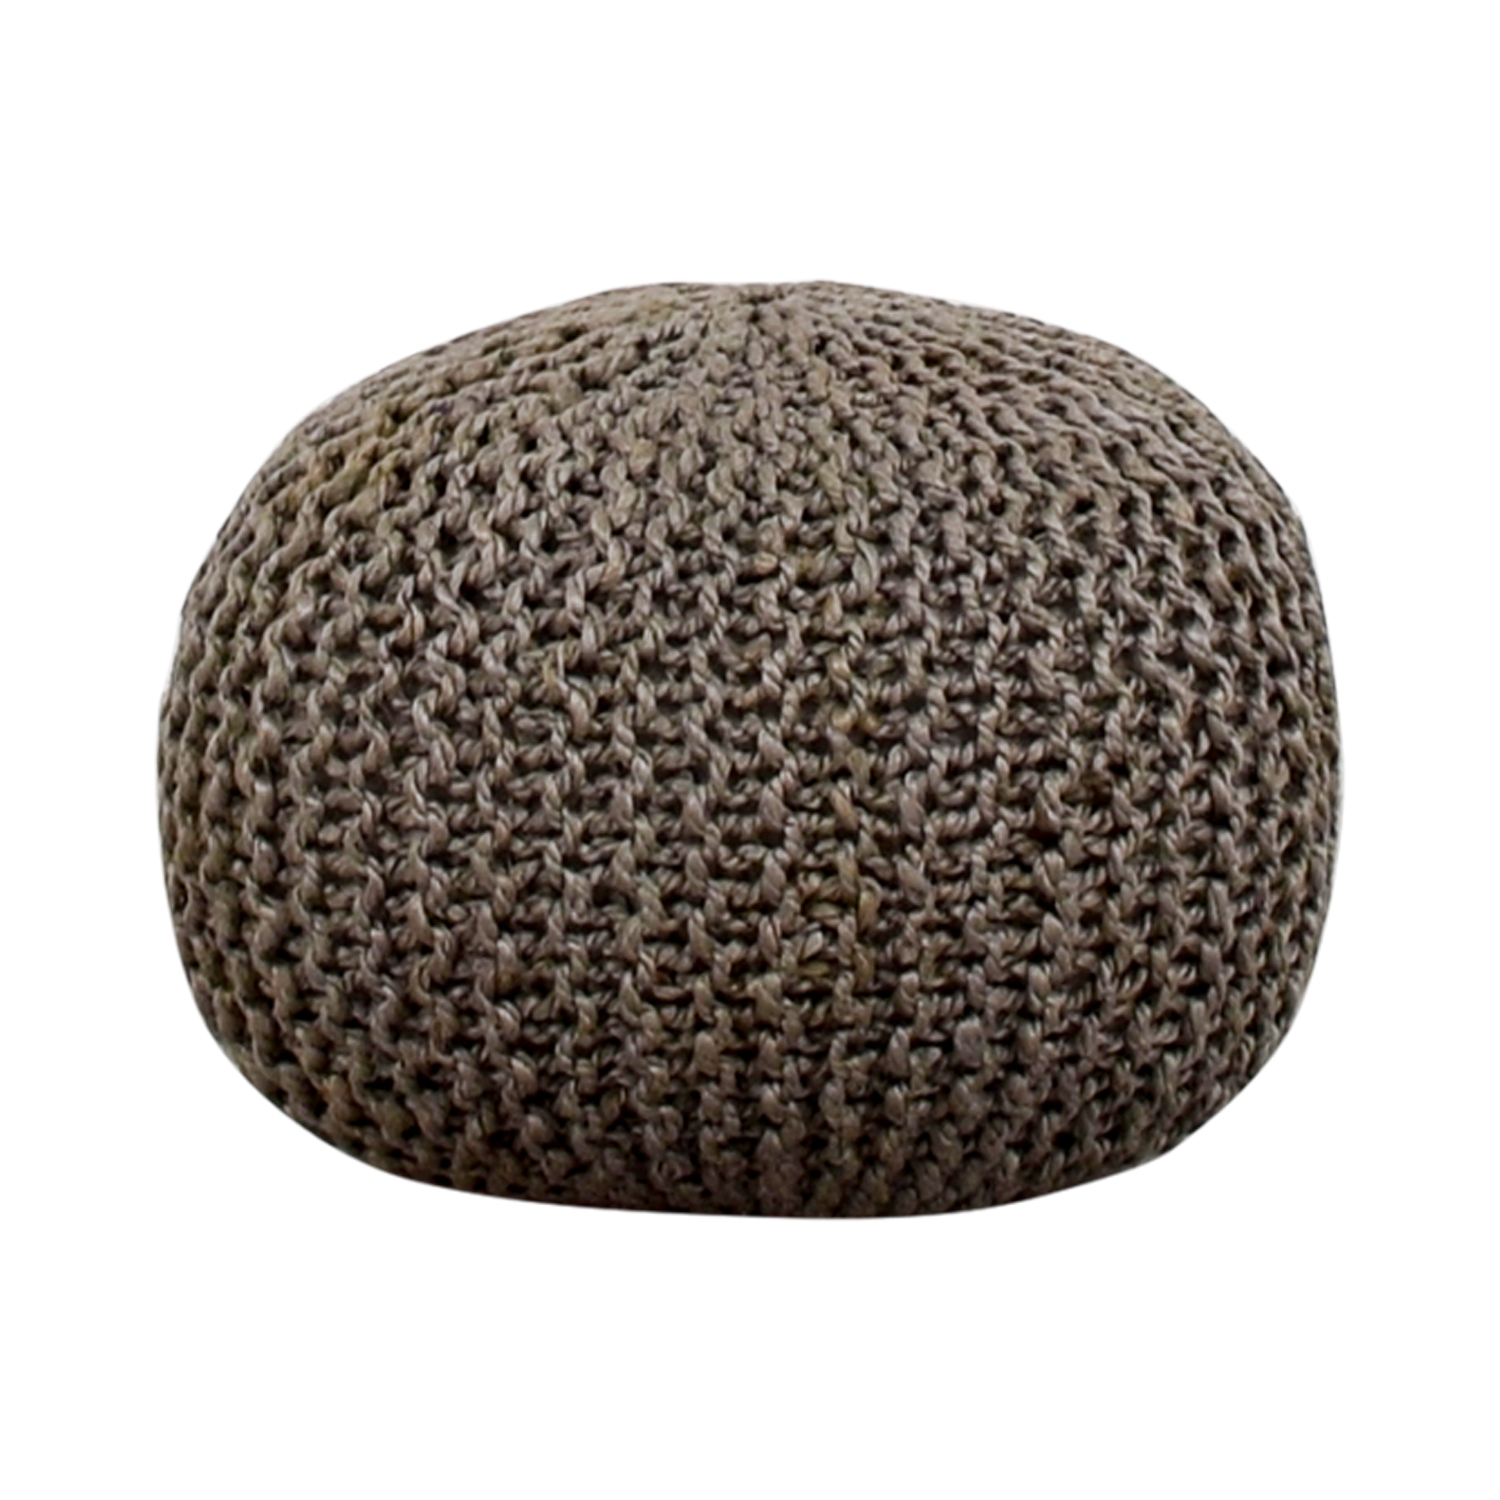 Beachcrest Pouf Beachcrest Pouf Gray Round Ottoman for sale